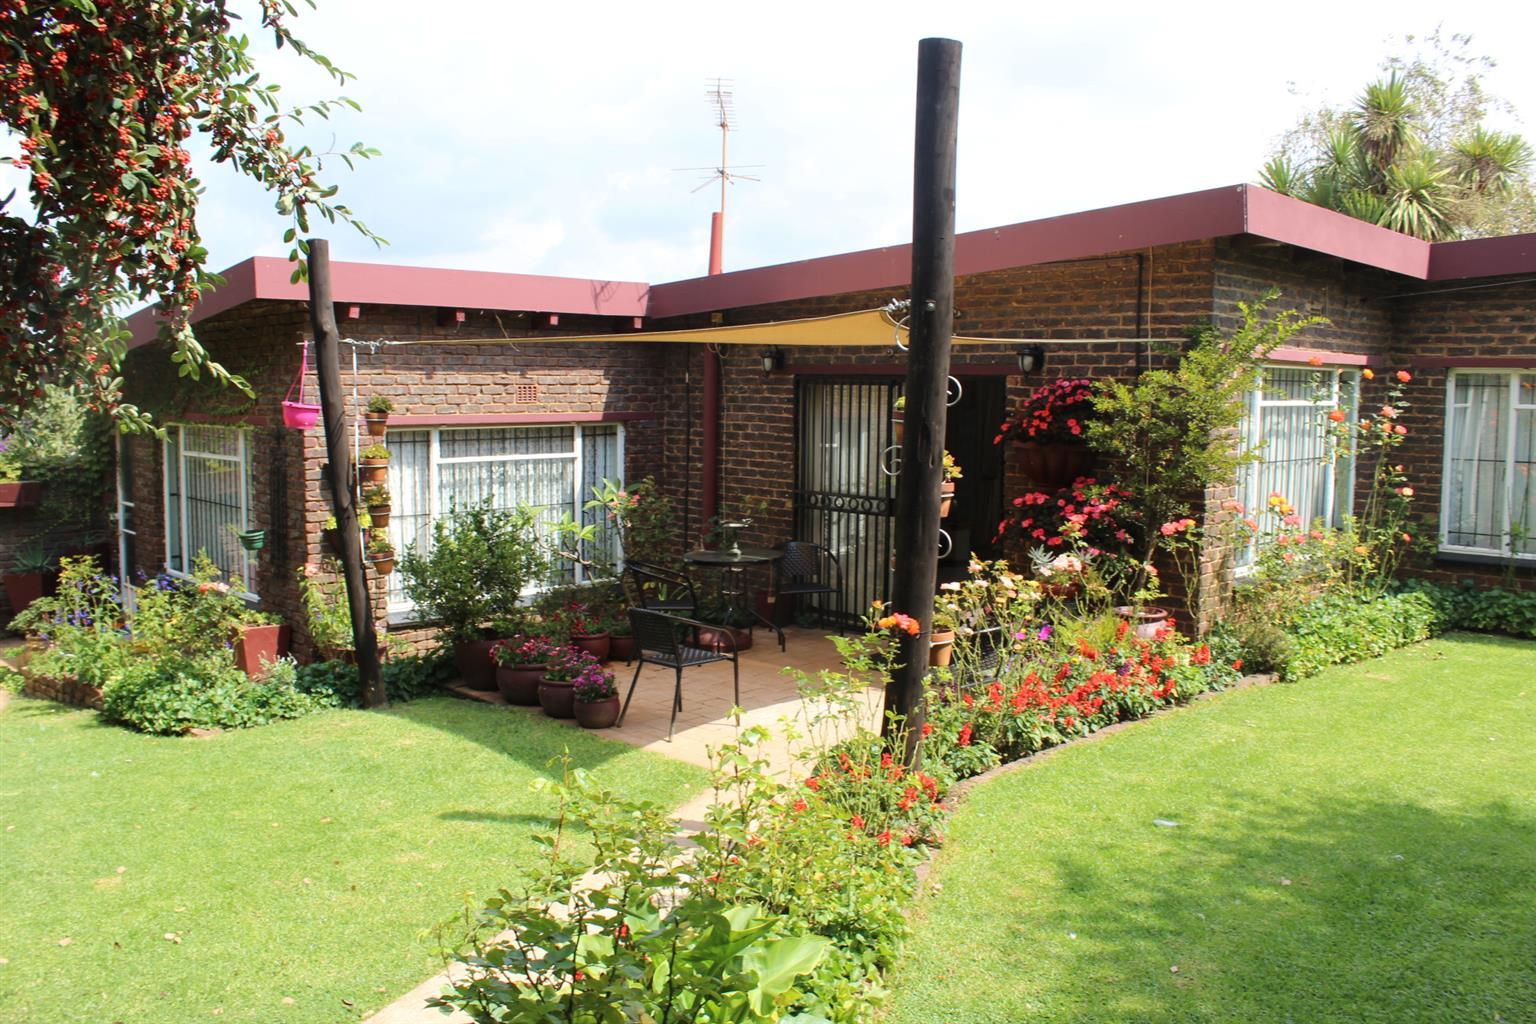 KEMPTON PARK (BREDELL OUTSKIRTS)-13 Min DRIVE DIRECTLY FROM BREFELL ...